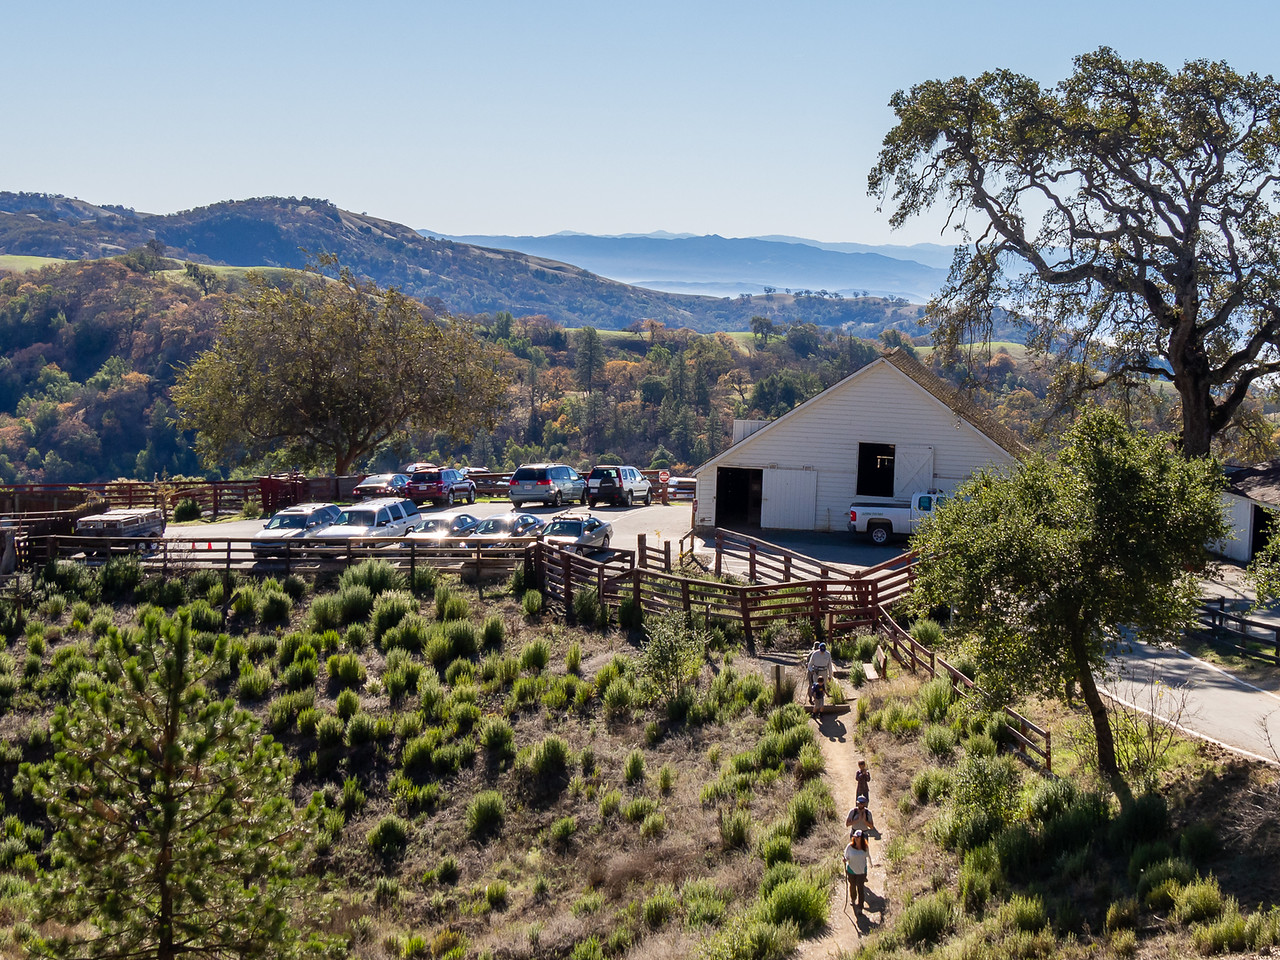 The Coe Ranch trailhead was hopping today.  Clear up here but a little haze down in the upper Santa Clara Valley below.